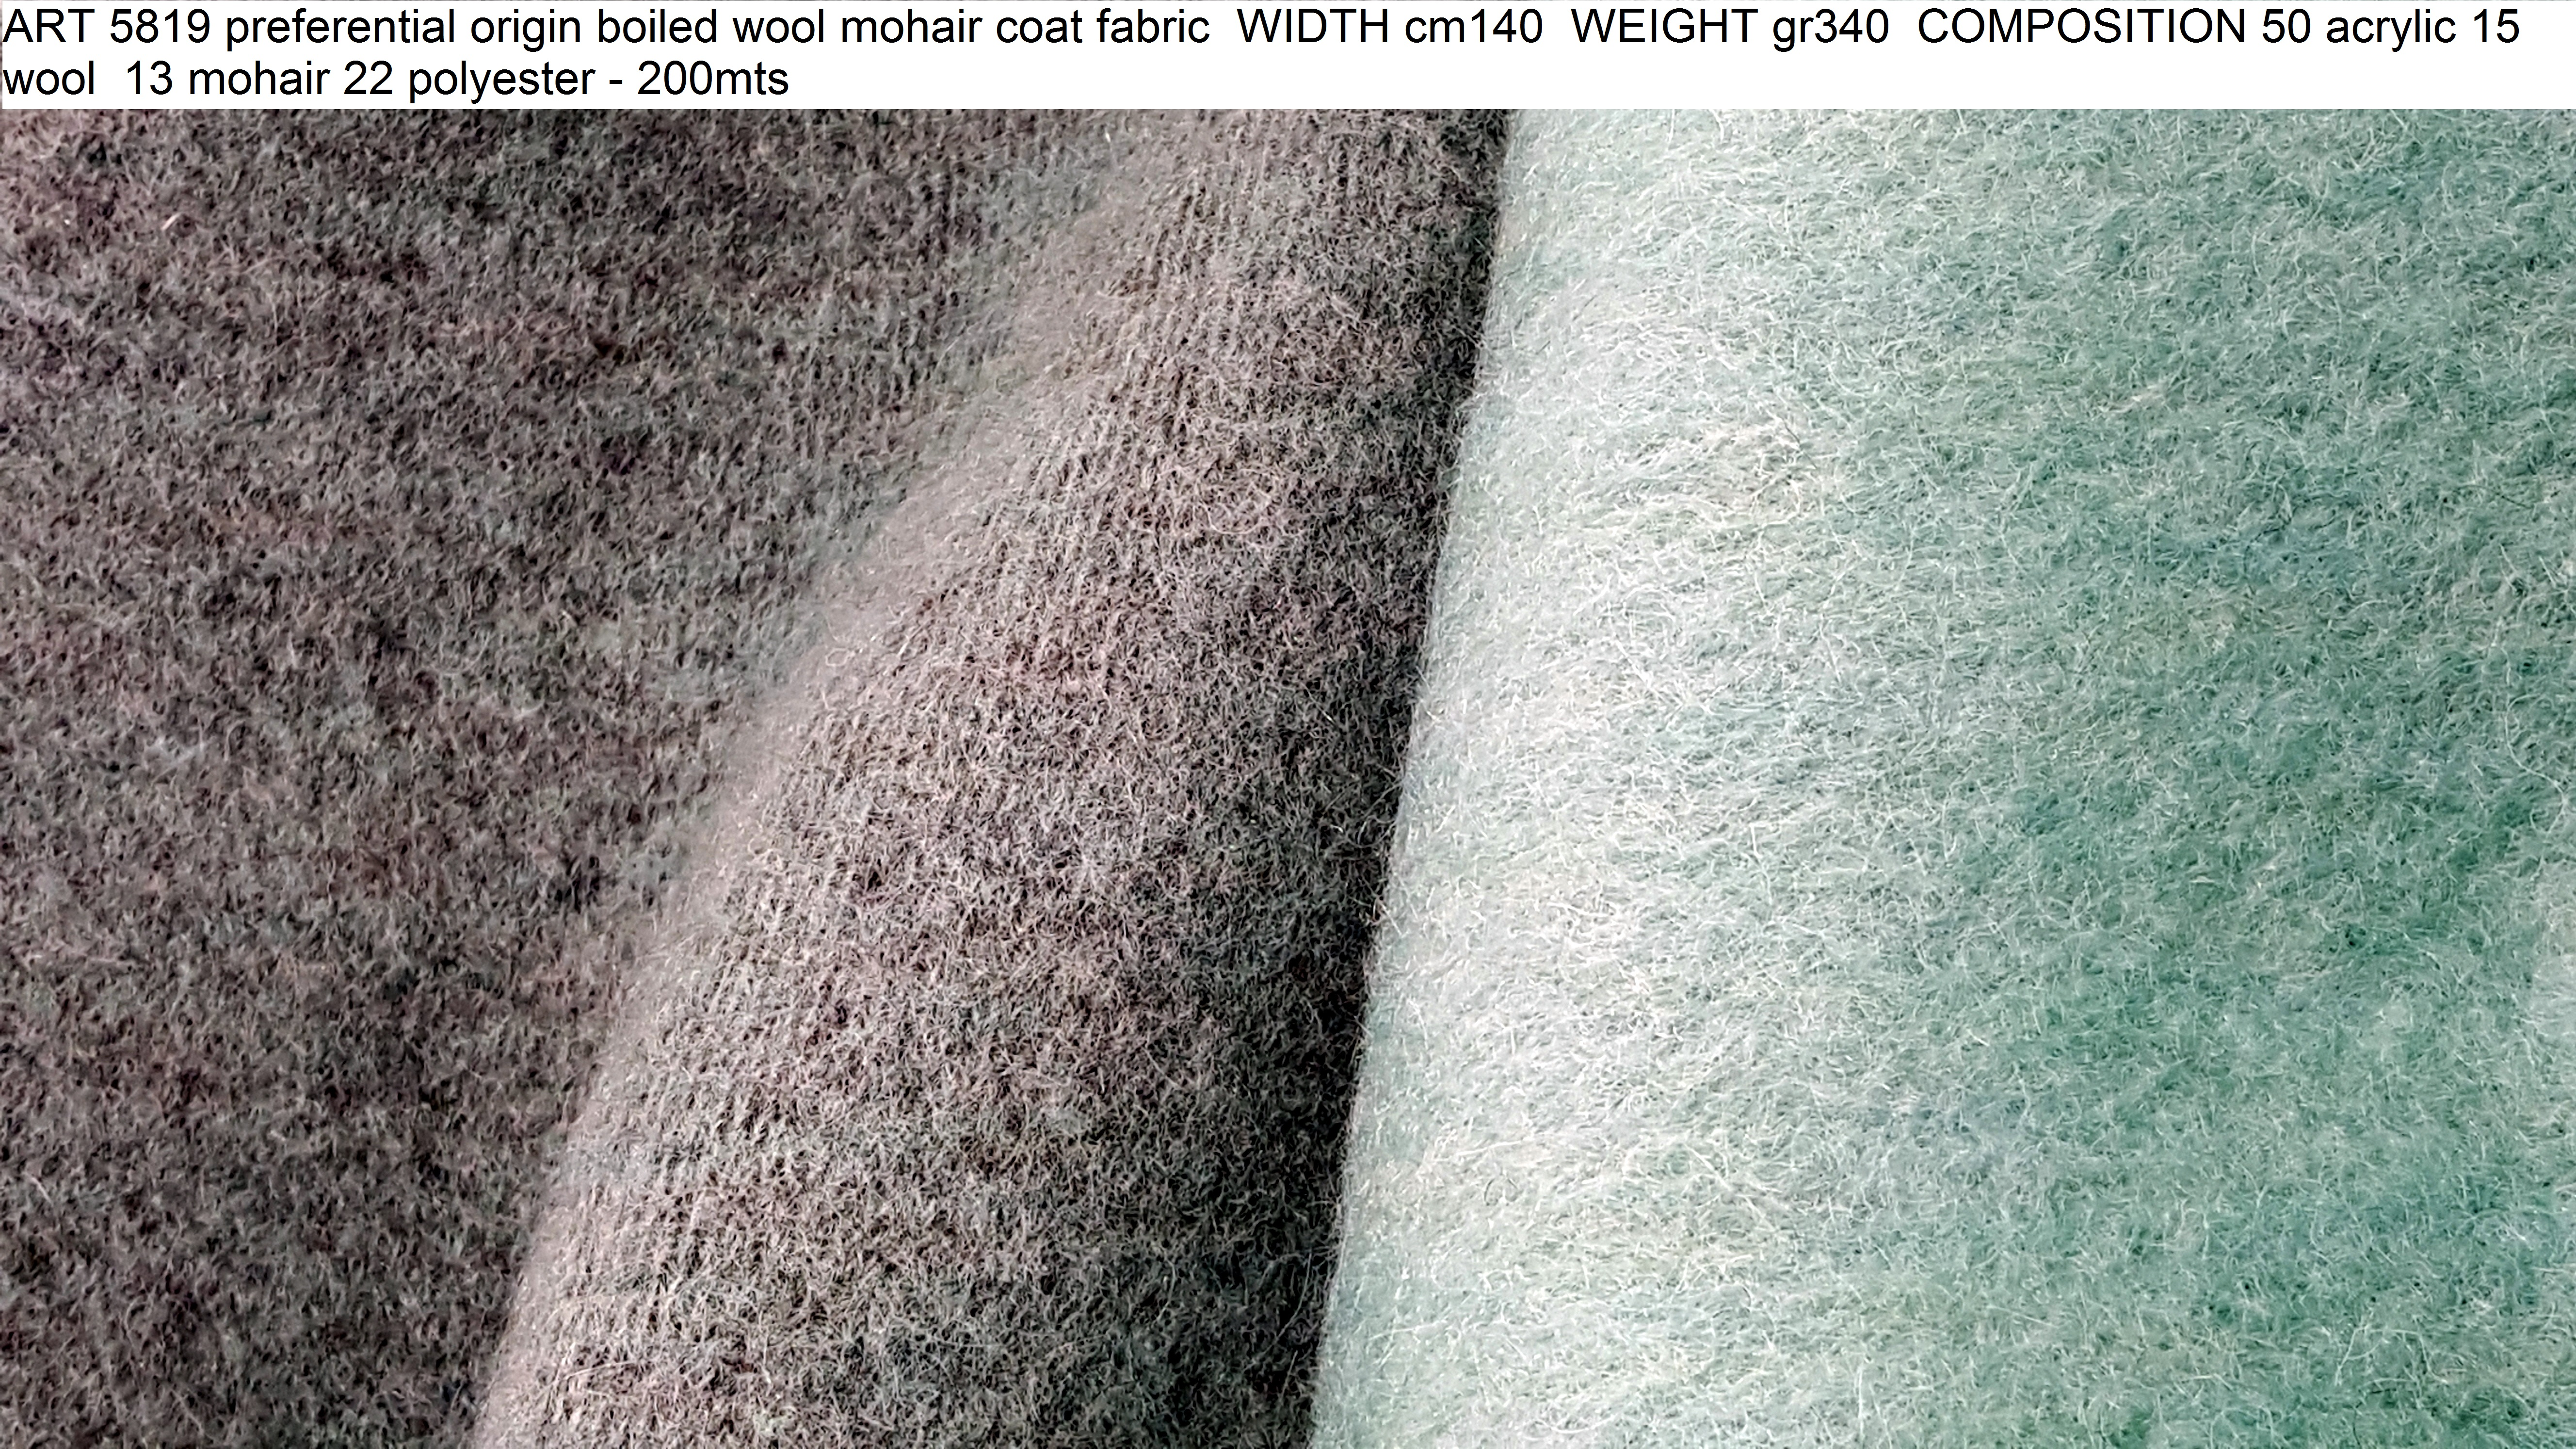 ART 5819 preferential origin boiled wool mohair coat fabric WIDTH cm140 WEIGHT gr340 COMPOSITION 50 acrylic 15 wool 13 mohair 22 polyester - 200mts